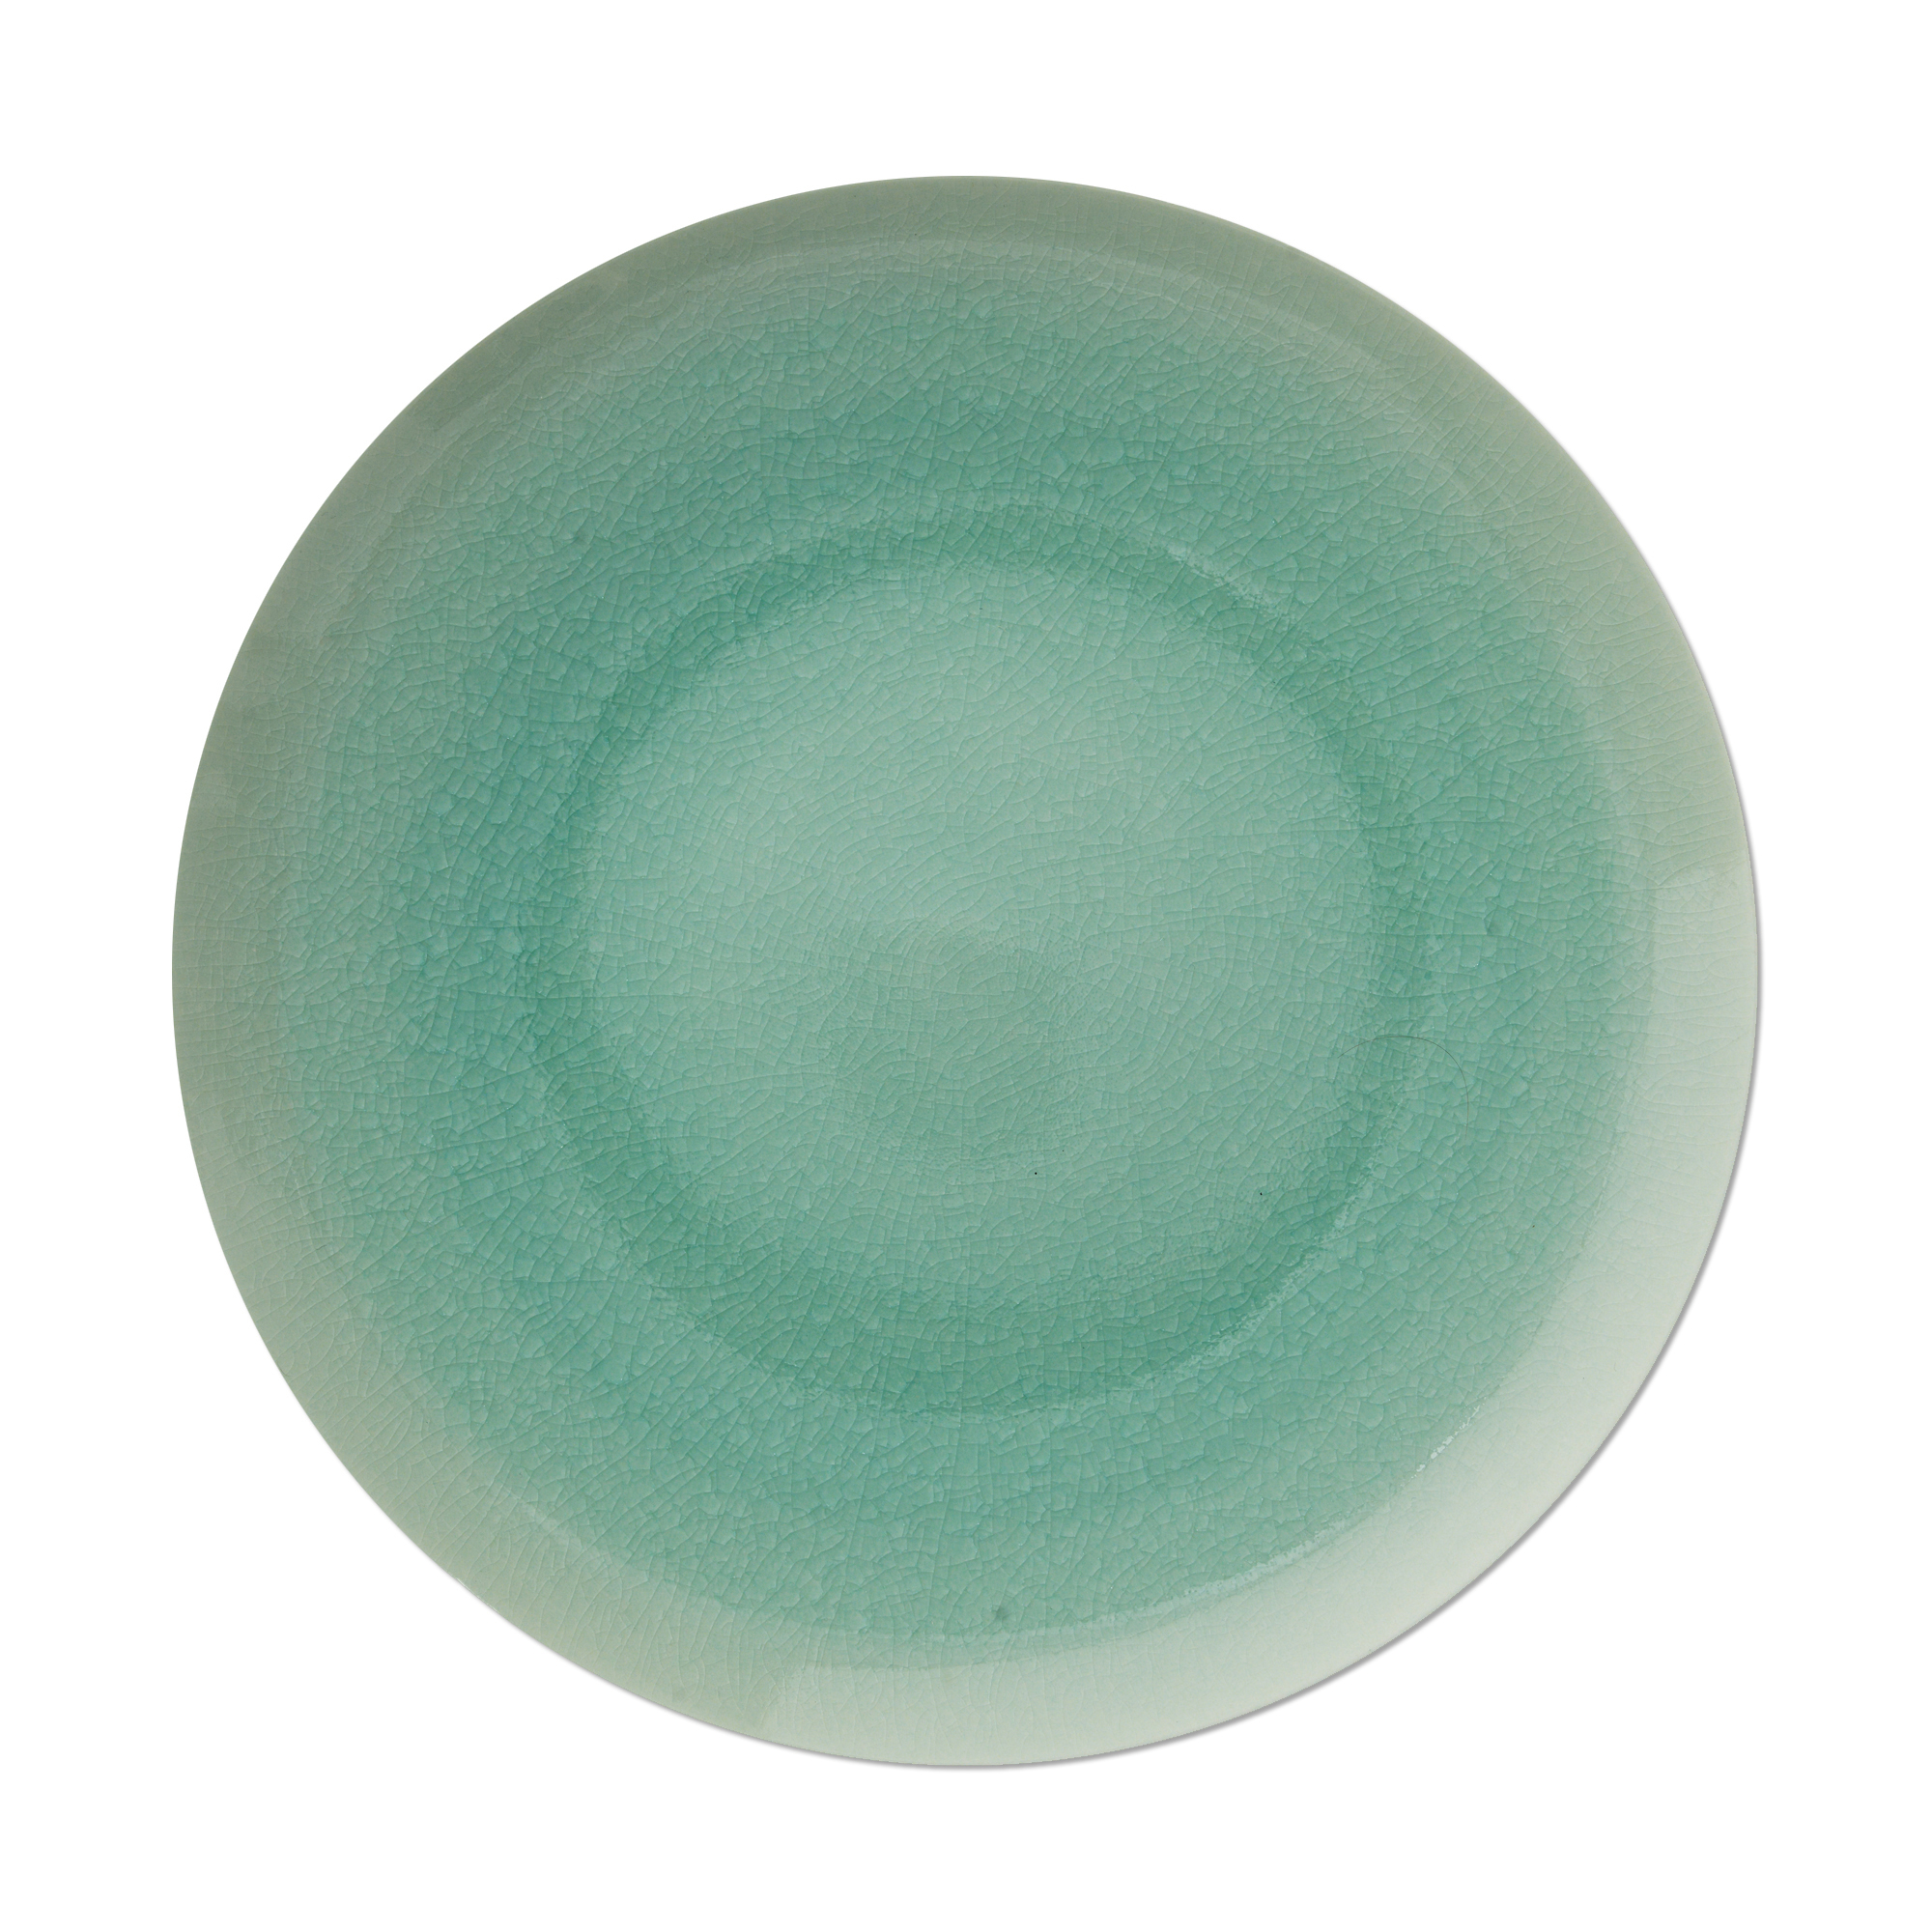 Kim Seybert Crackle Sea Glass Porcelain Charger